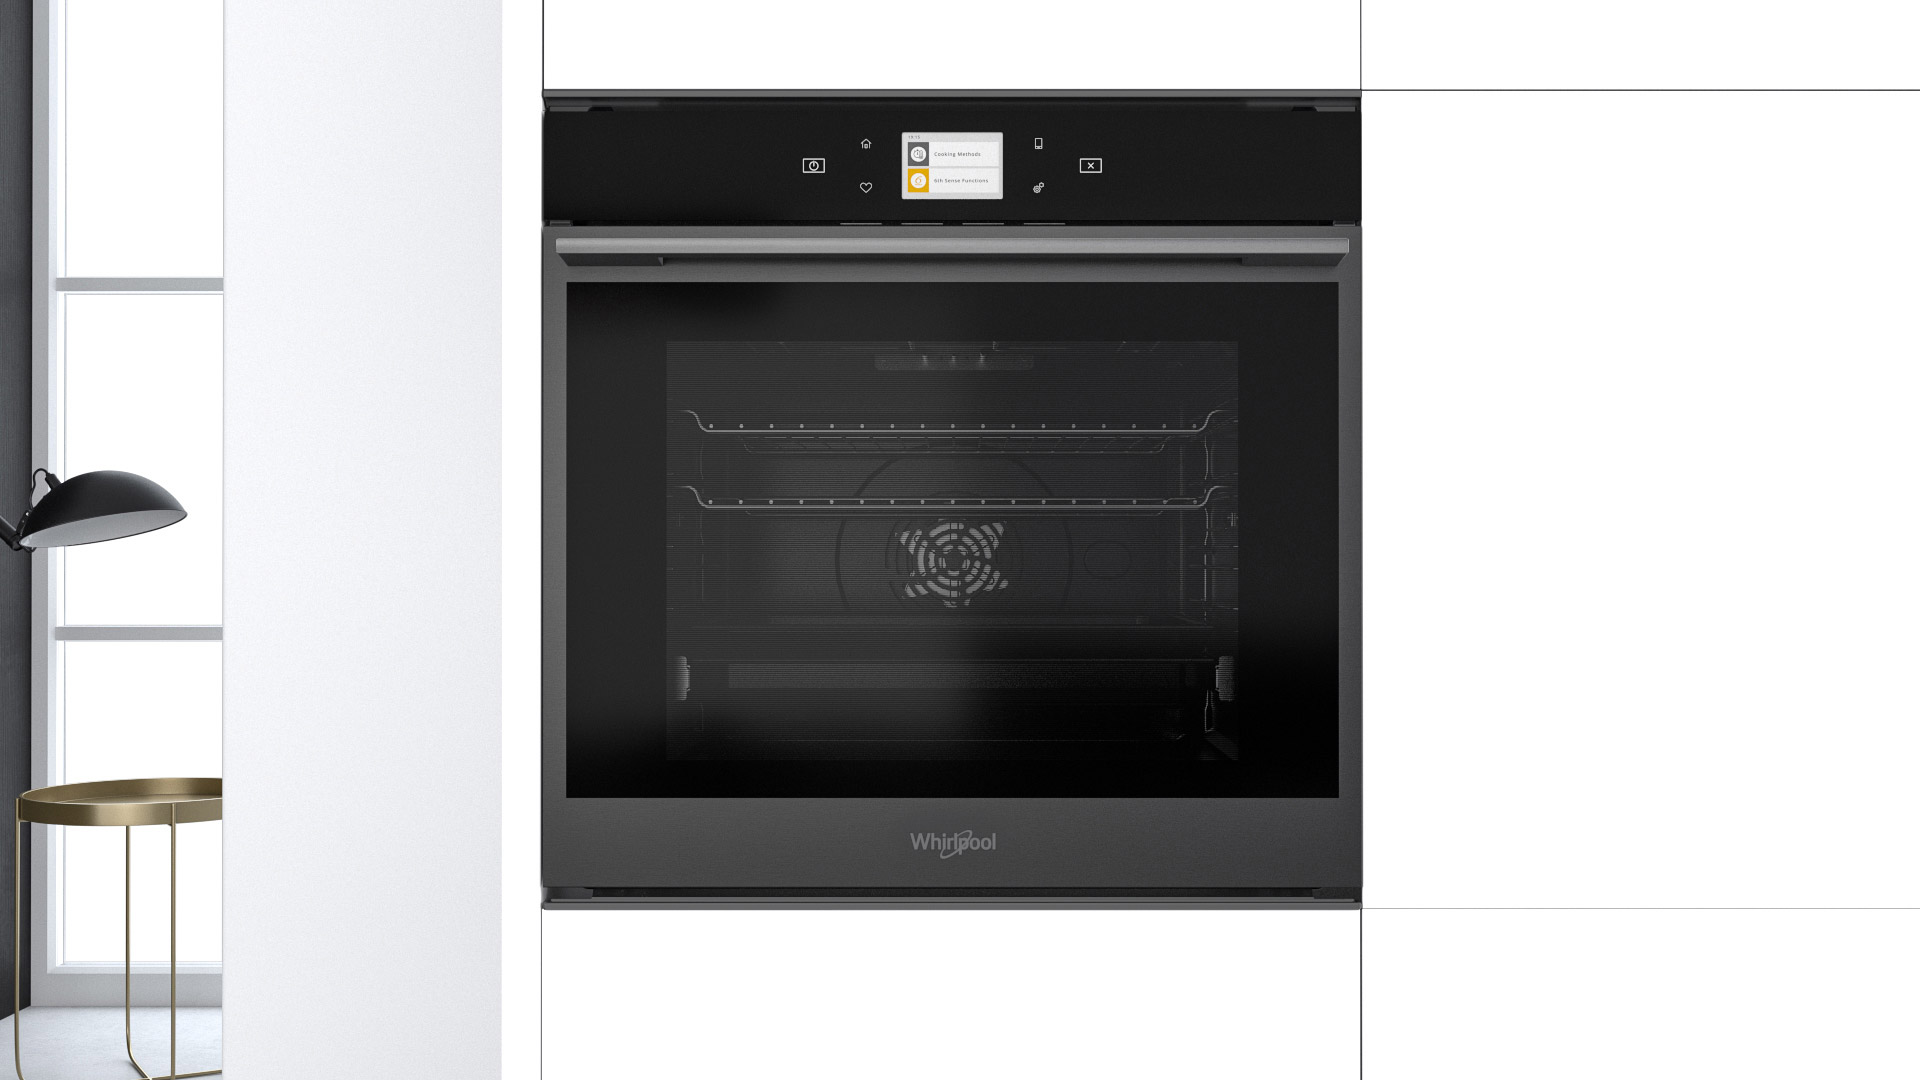 Glamour and performance blend together in the new W Collection Black Fiber oven by Whirlpool - Cucine LUBE